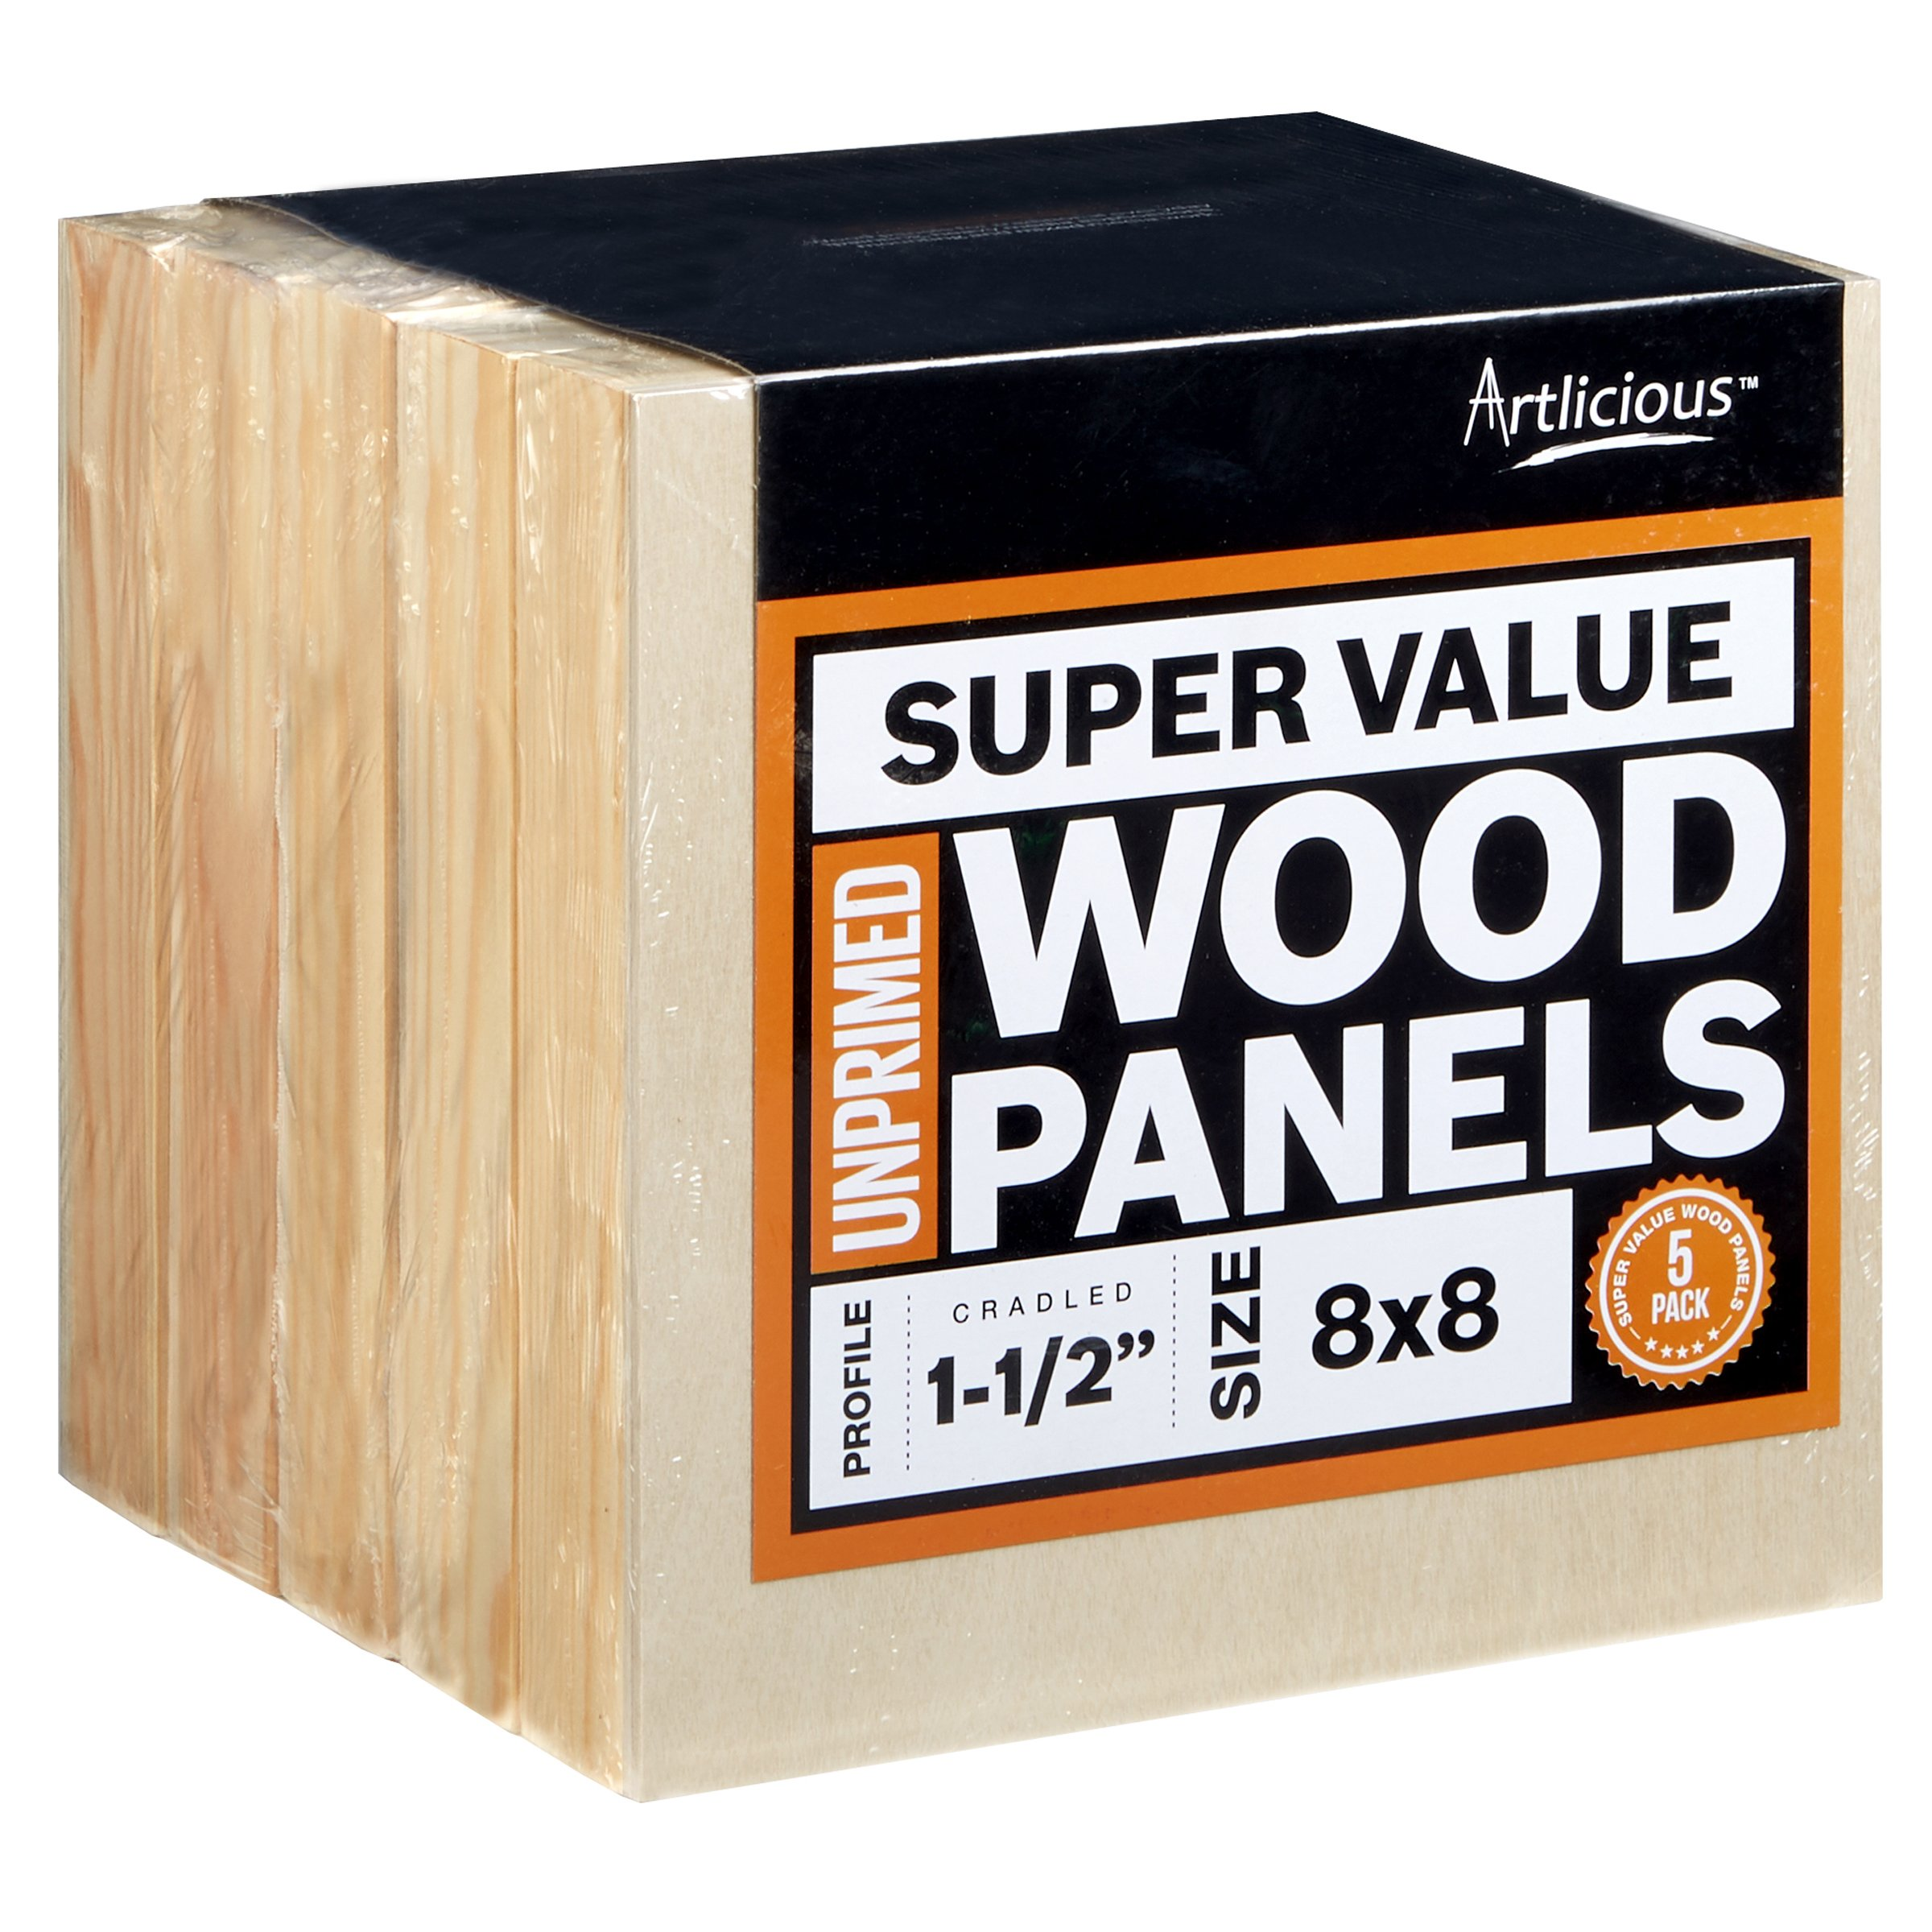 Artlicious - 5 Gallery Profile Super Value Wood Panel Boards - Great Alternative to Canvas Panels, Stretched Canvas & Canvas Rolls (8x8, Gallery Profile) by Artlicious